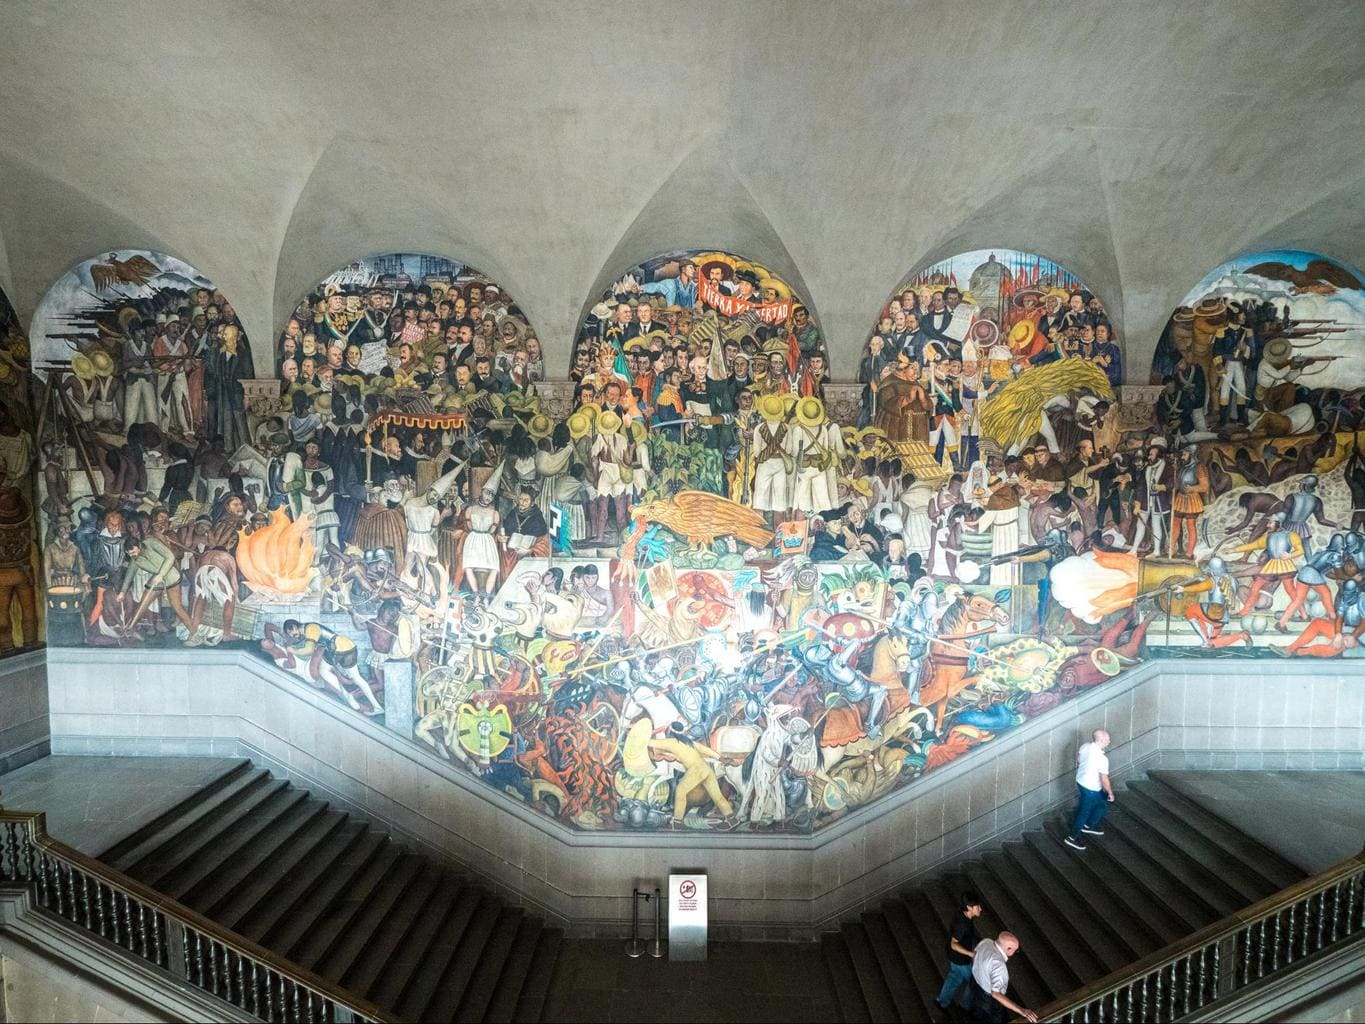 Diego Rivera's murals at the Palacio Nacional in Mexico City